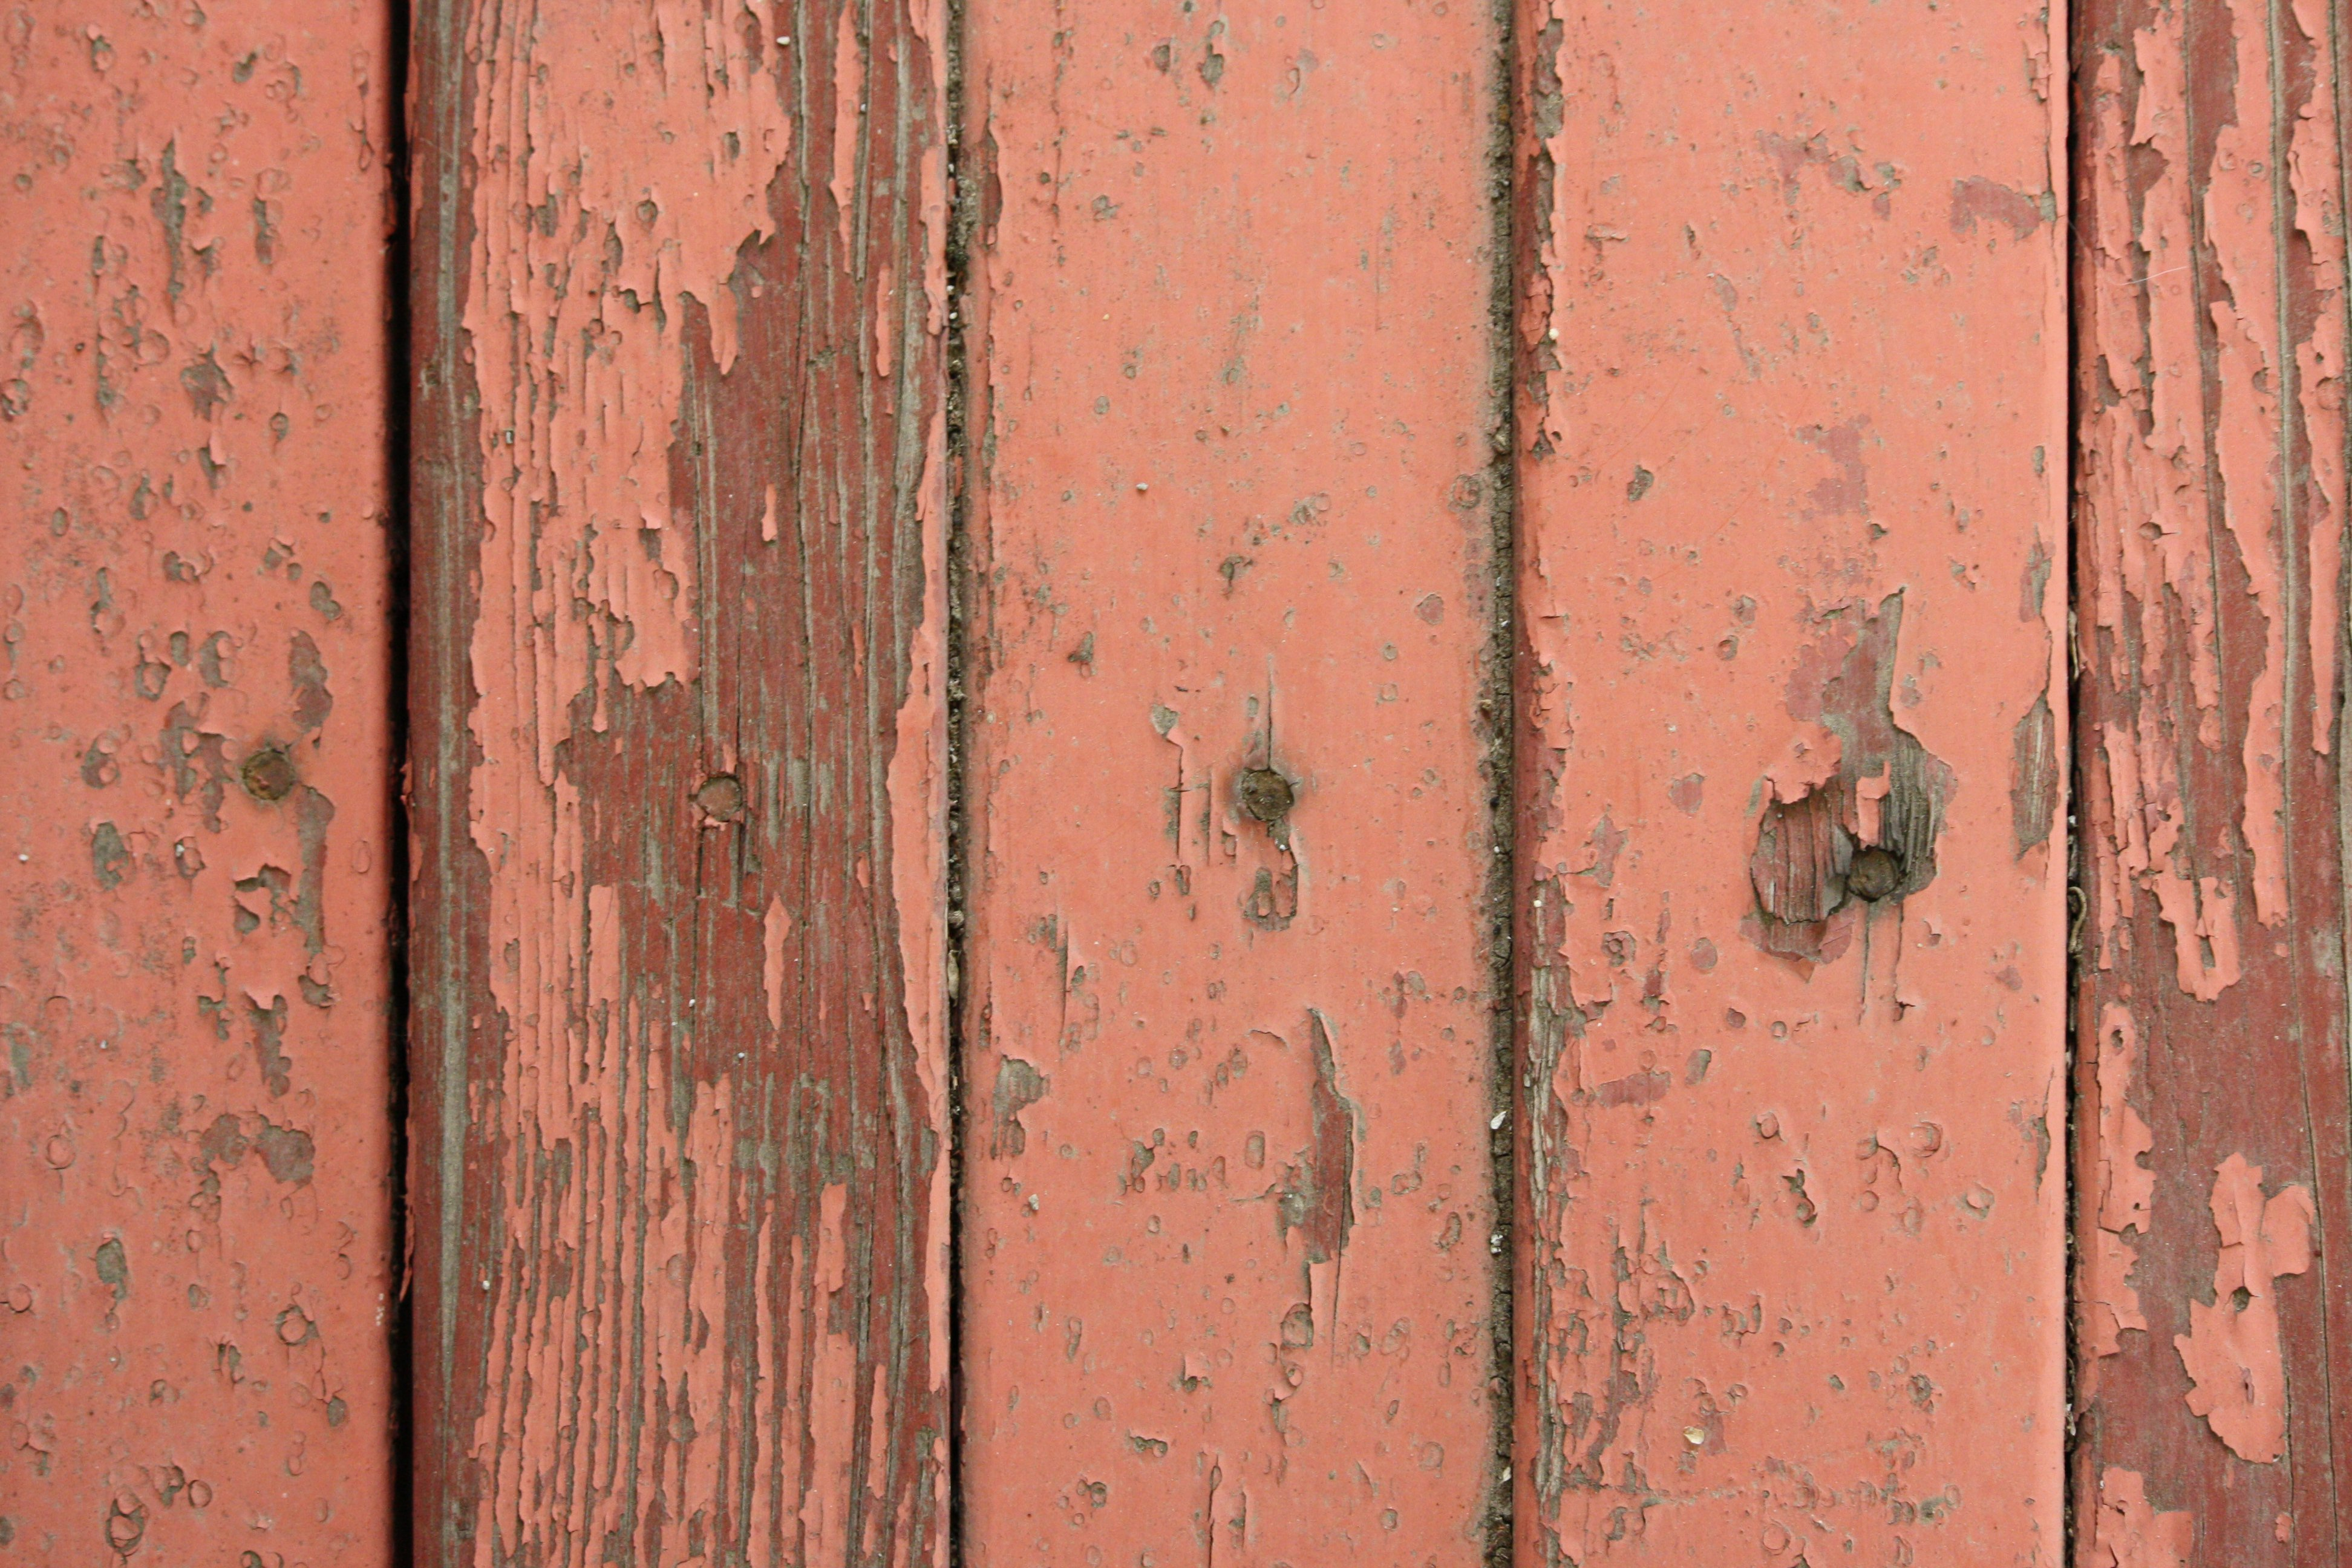 Peeling Red Paint On Old Wooden Boards Texture Picture